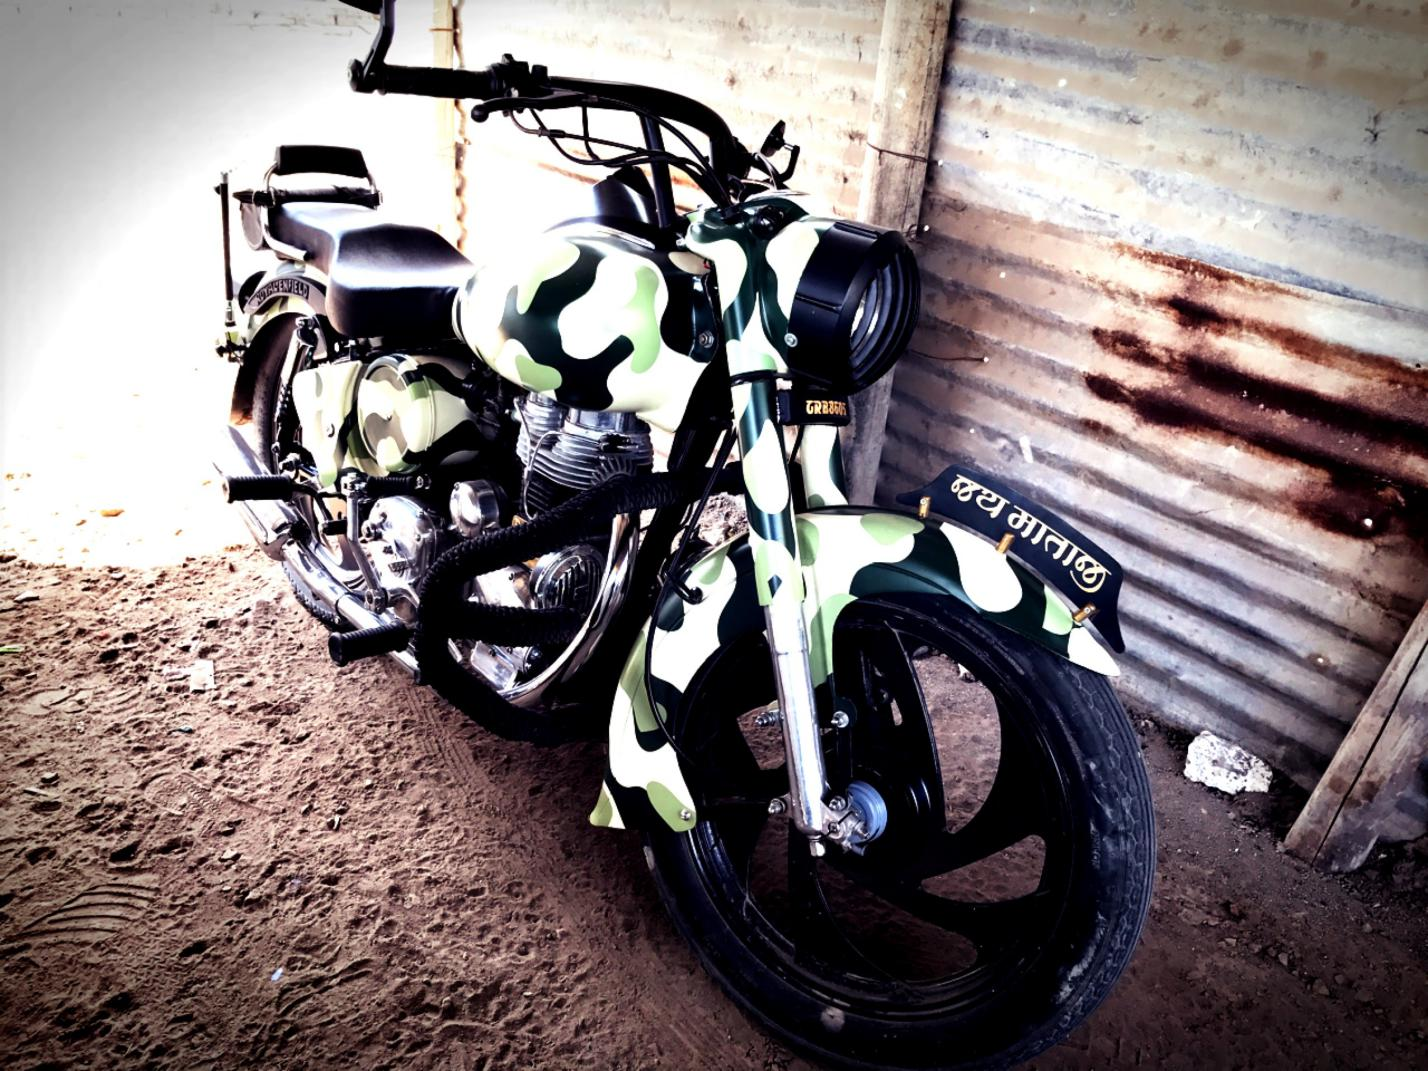 What are the component that decide my two wheeler loan interest rate